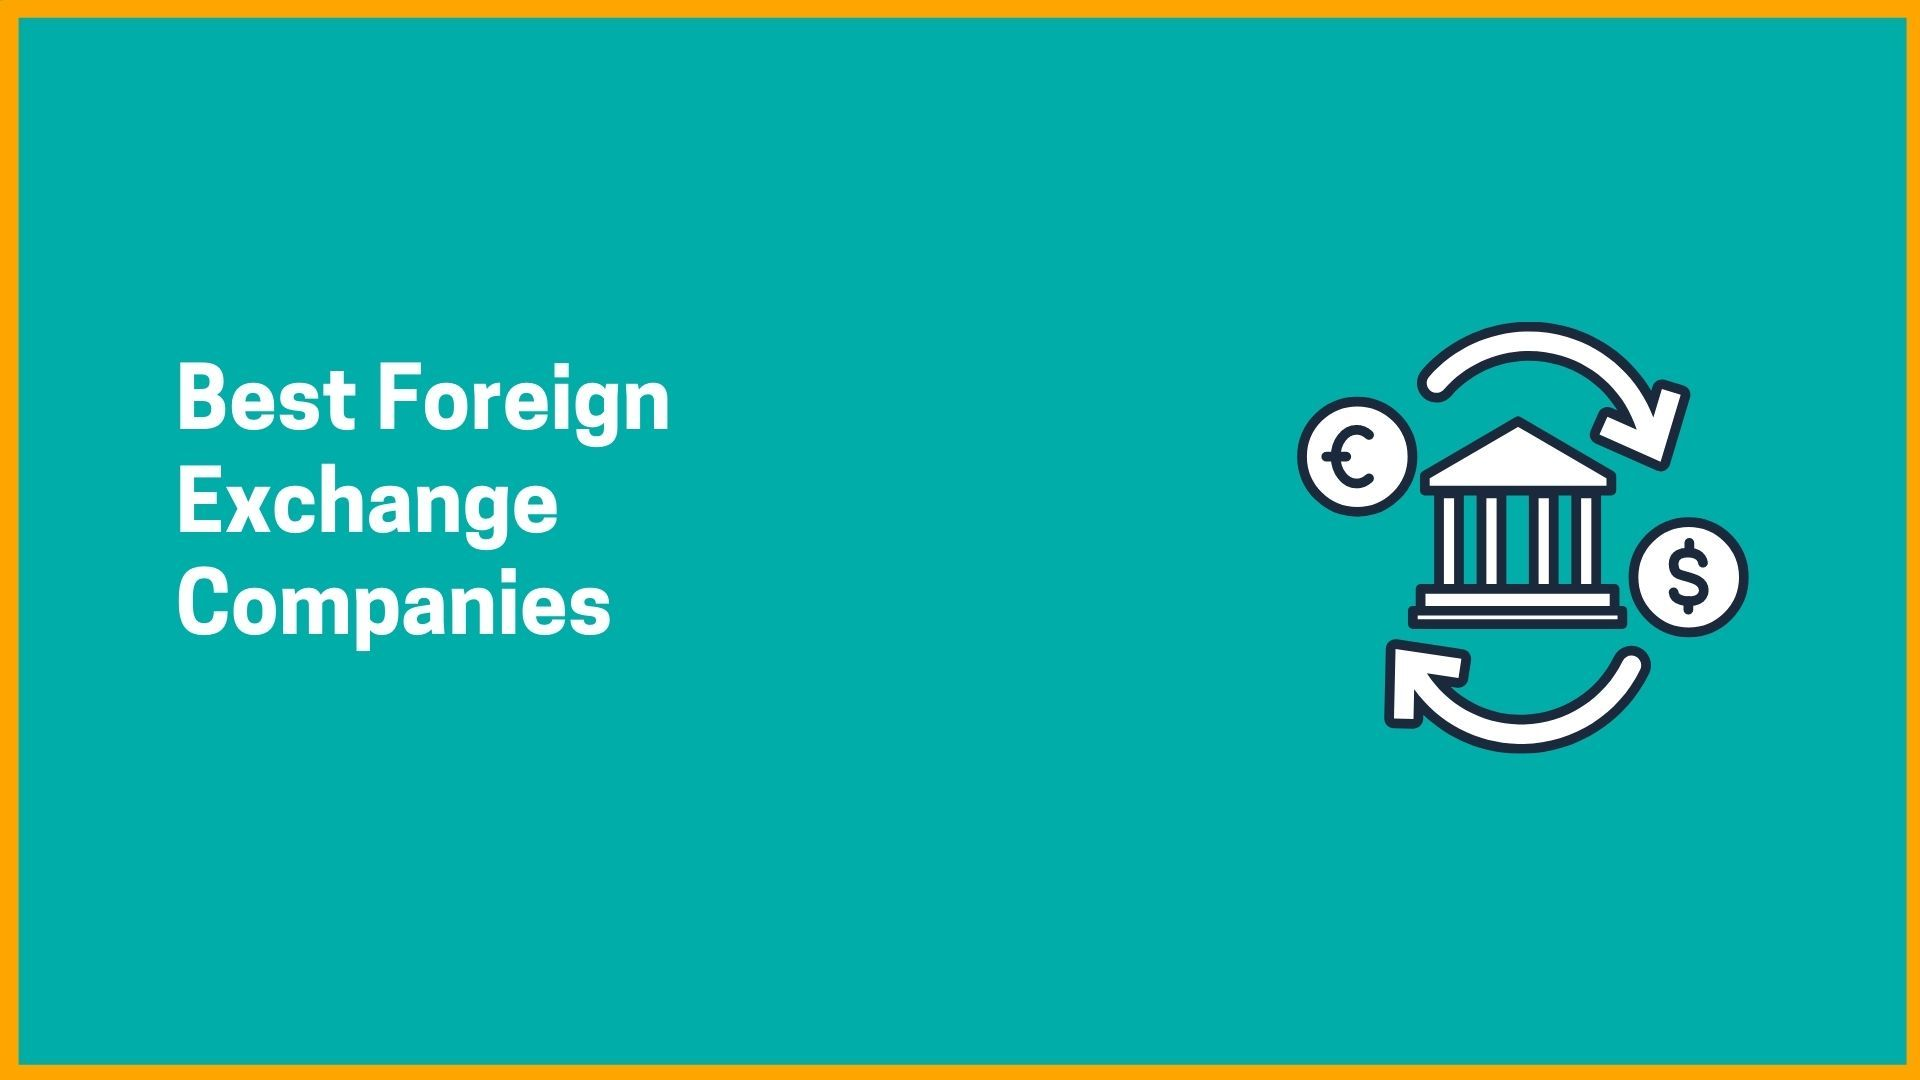 Best Foreign Exchange Companies